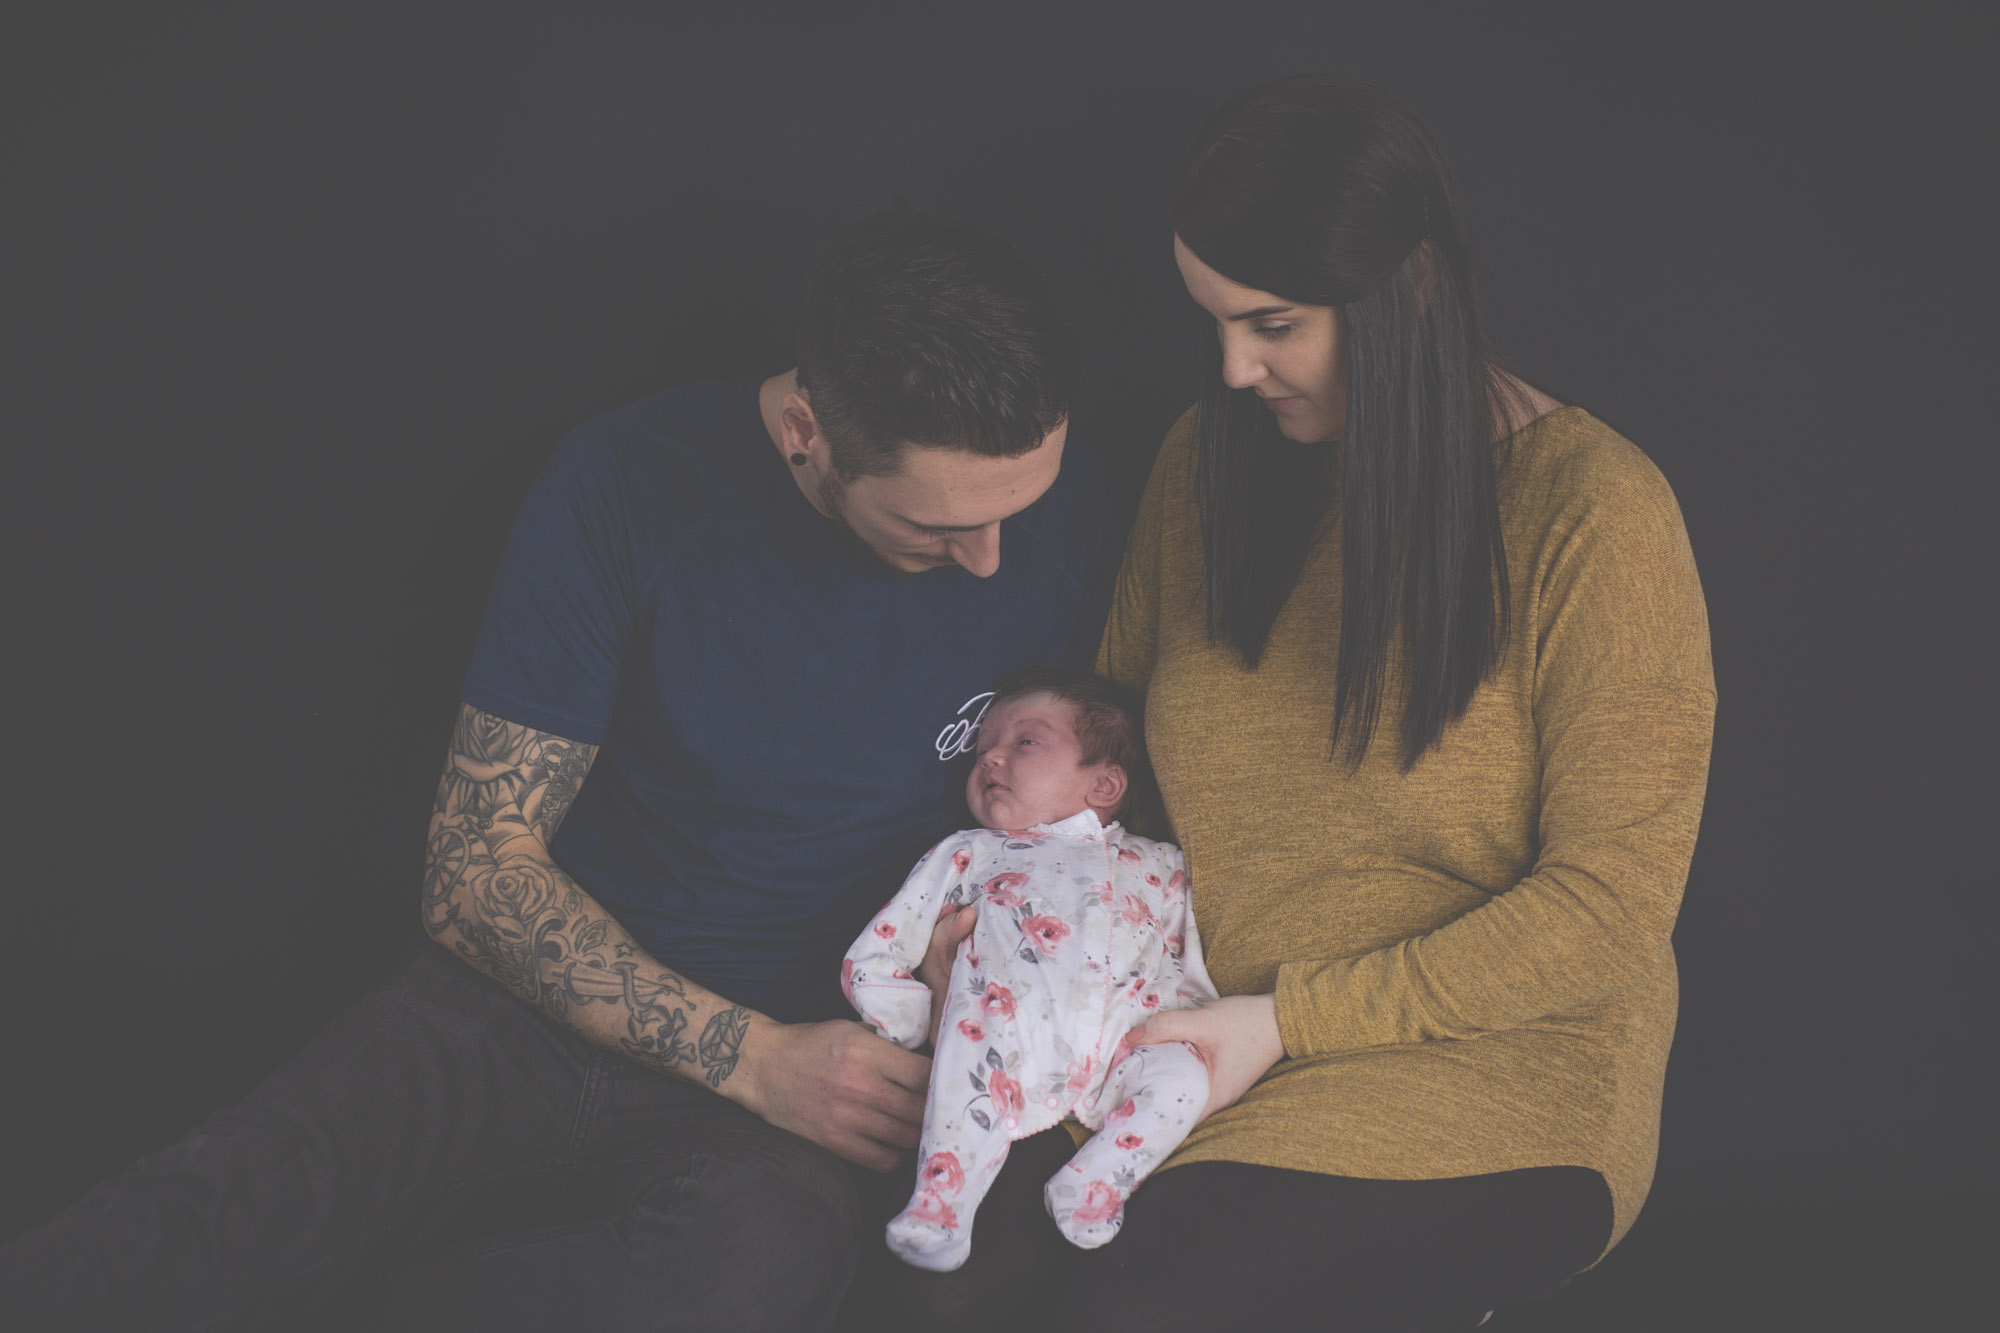 newborn-baby-family-photo-bradford-west-yorkshire-chicca-photography-6.jpg